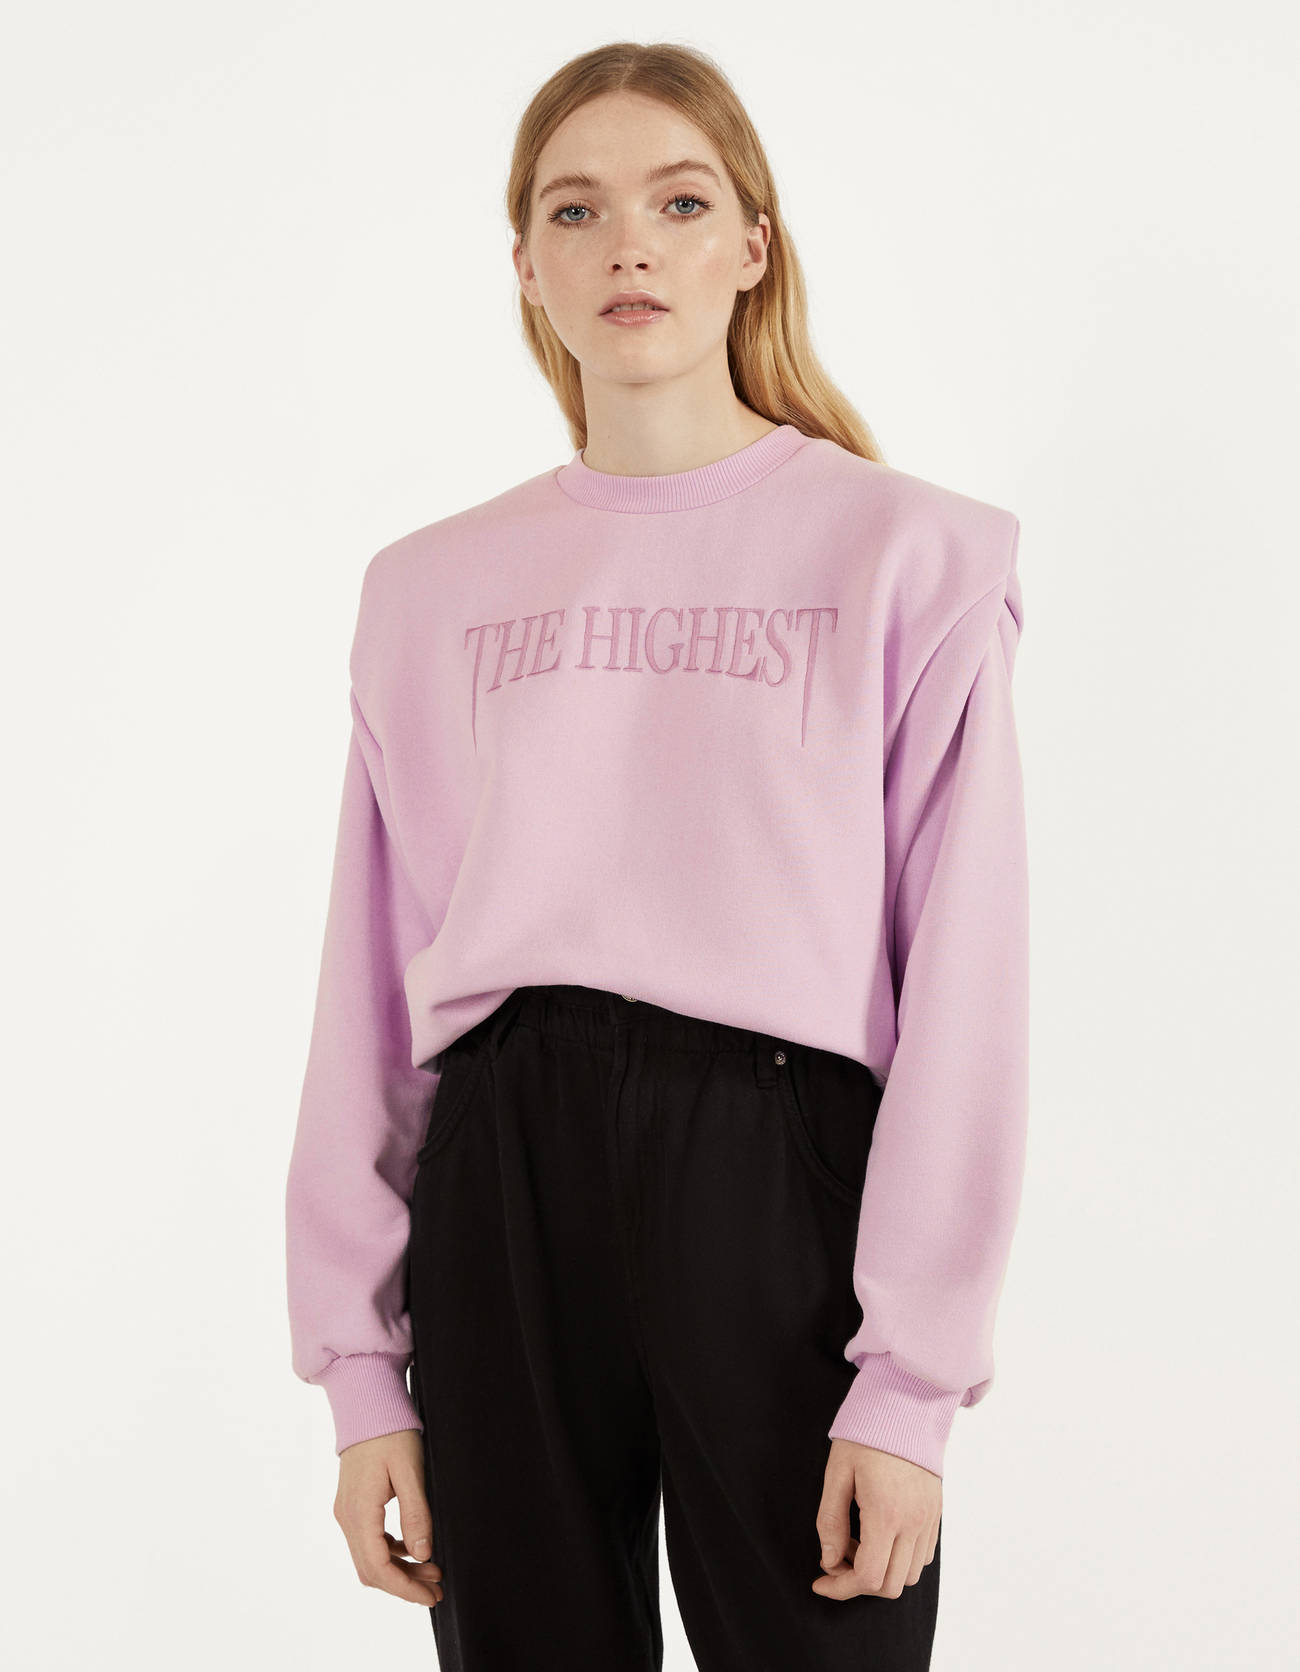 Sweatshirt with shoulder pads and embroidery.